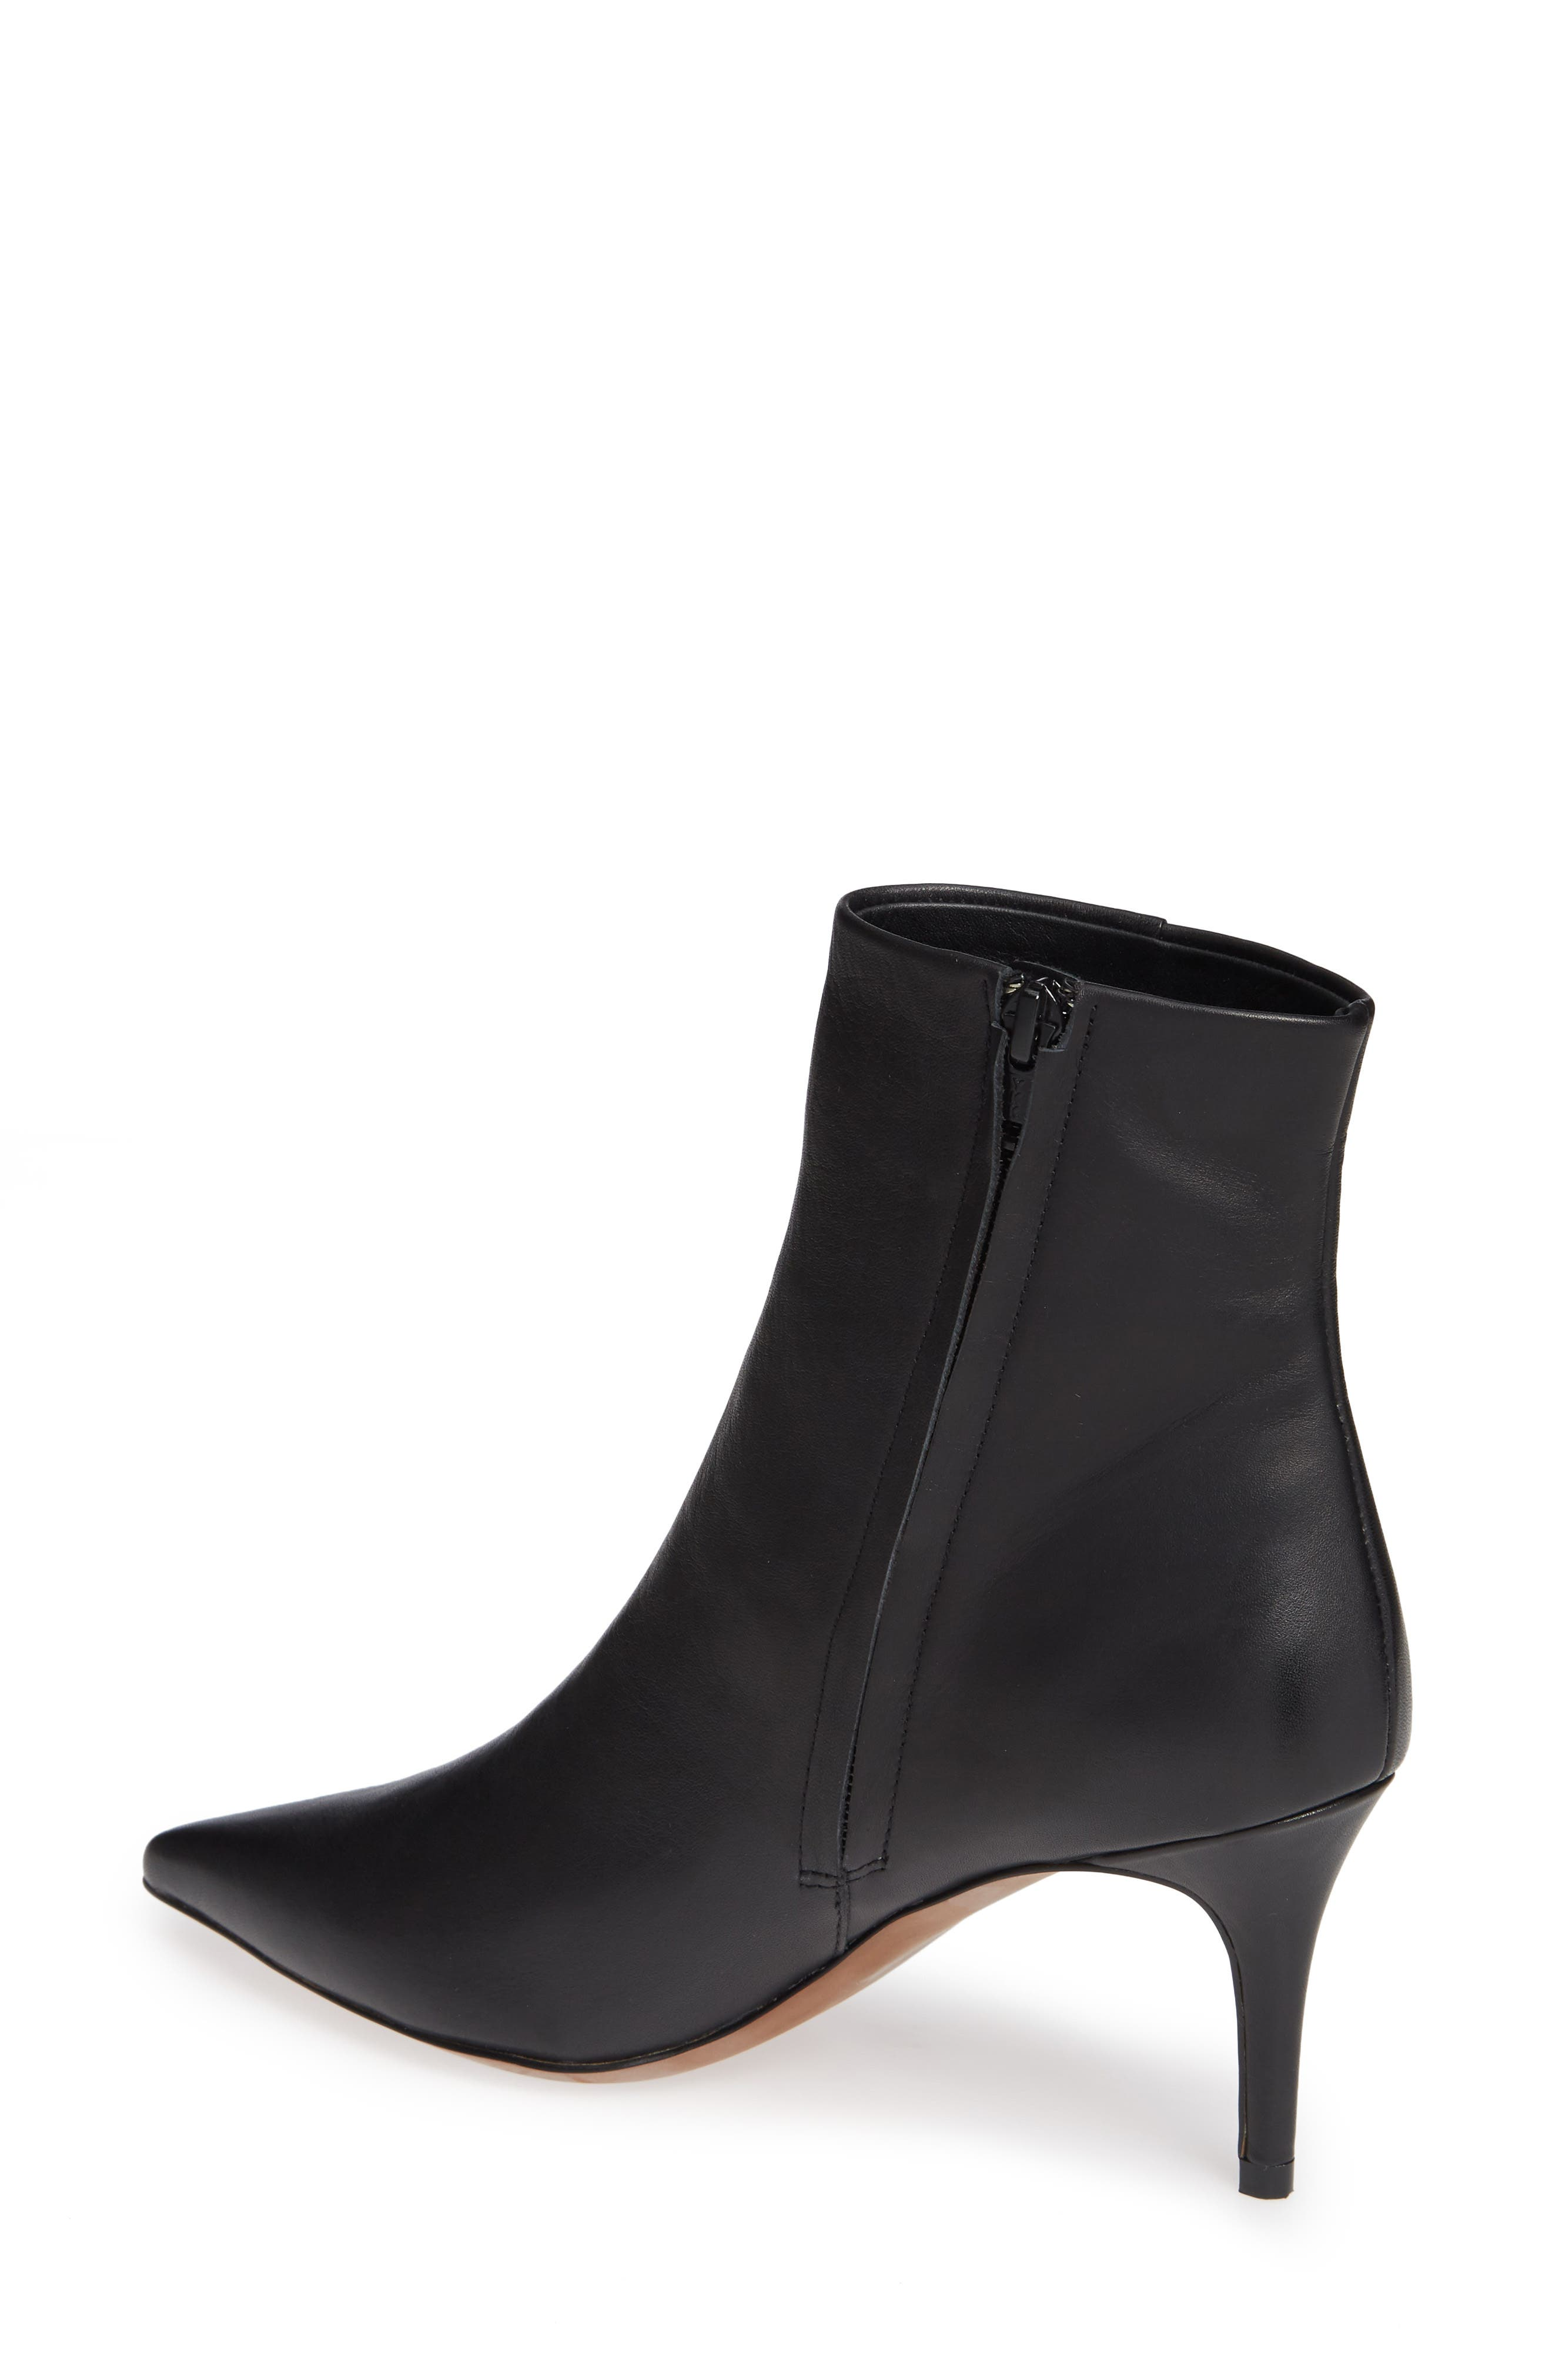 Nita Bootie,                             Alternate thumbnail 2, color,                             BLACK LEATHER